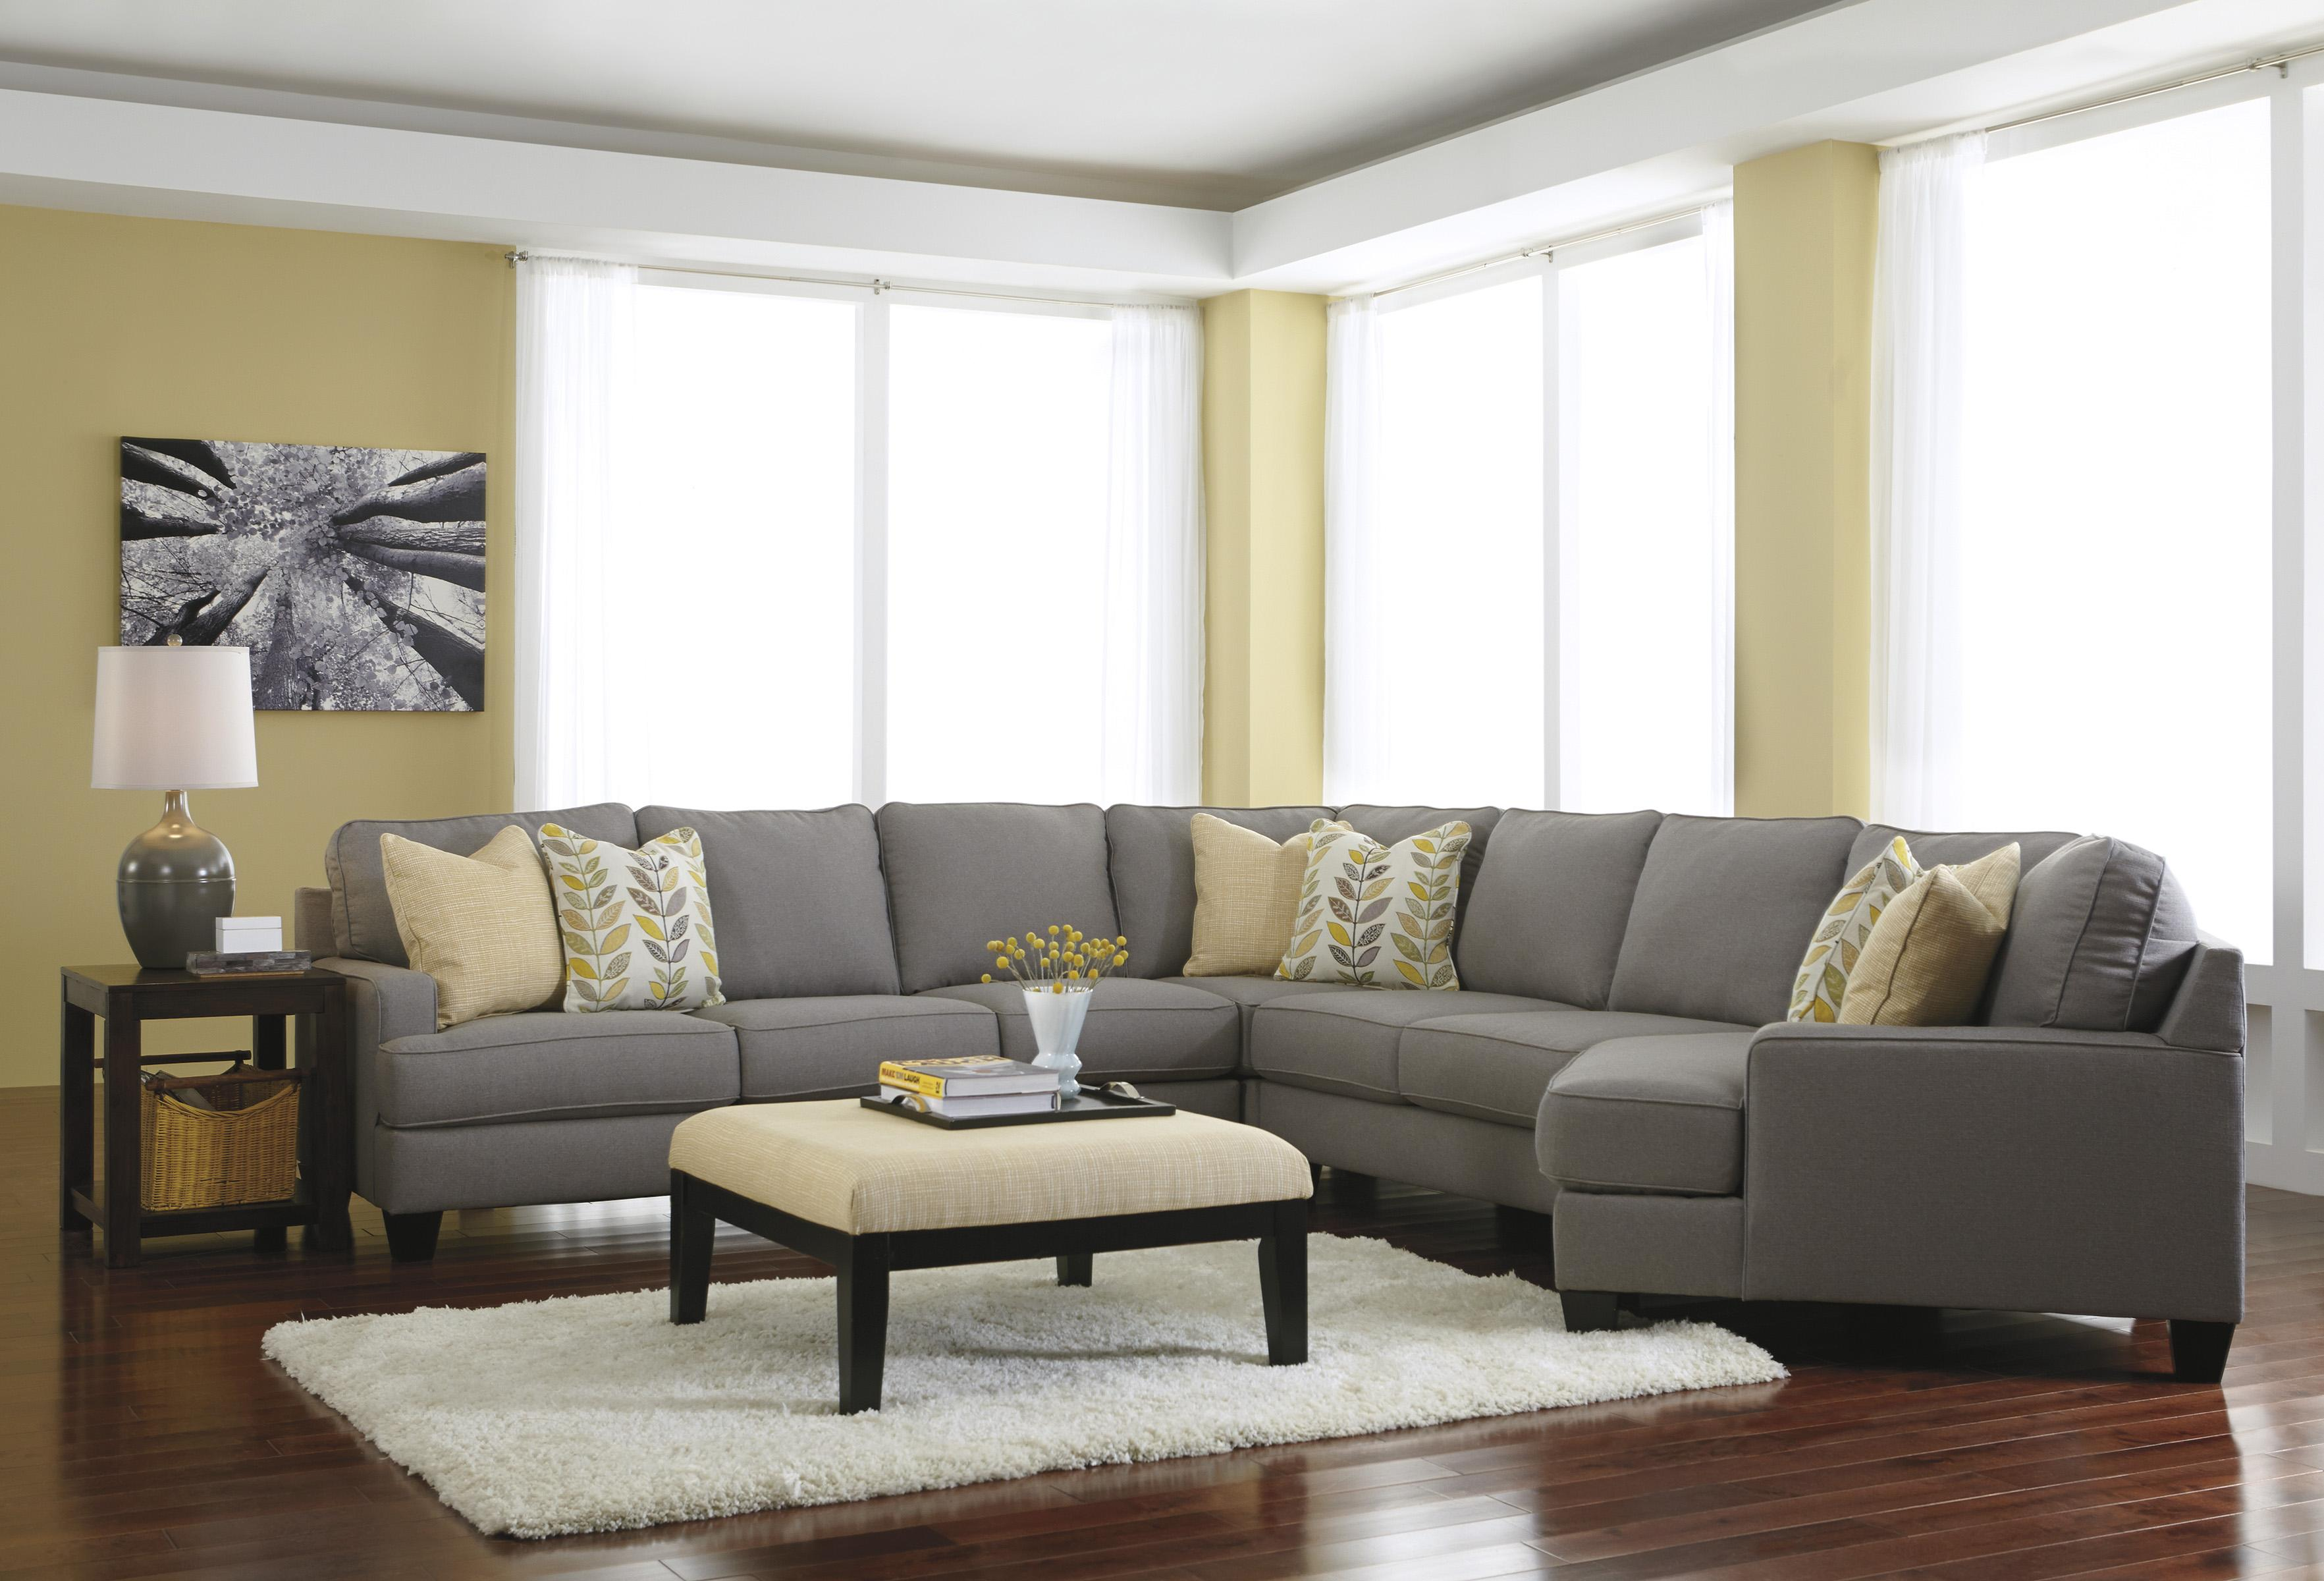 Modern 5 piece sectional sofa with right cuddler for Small sectional sofa with cuddler